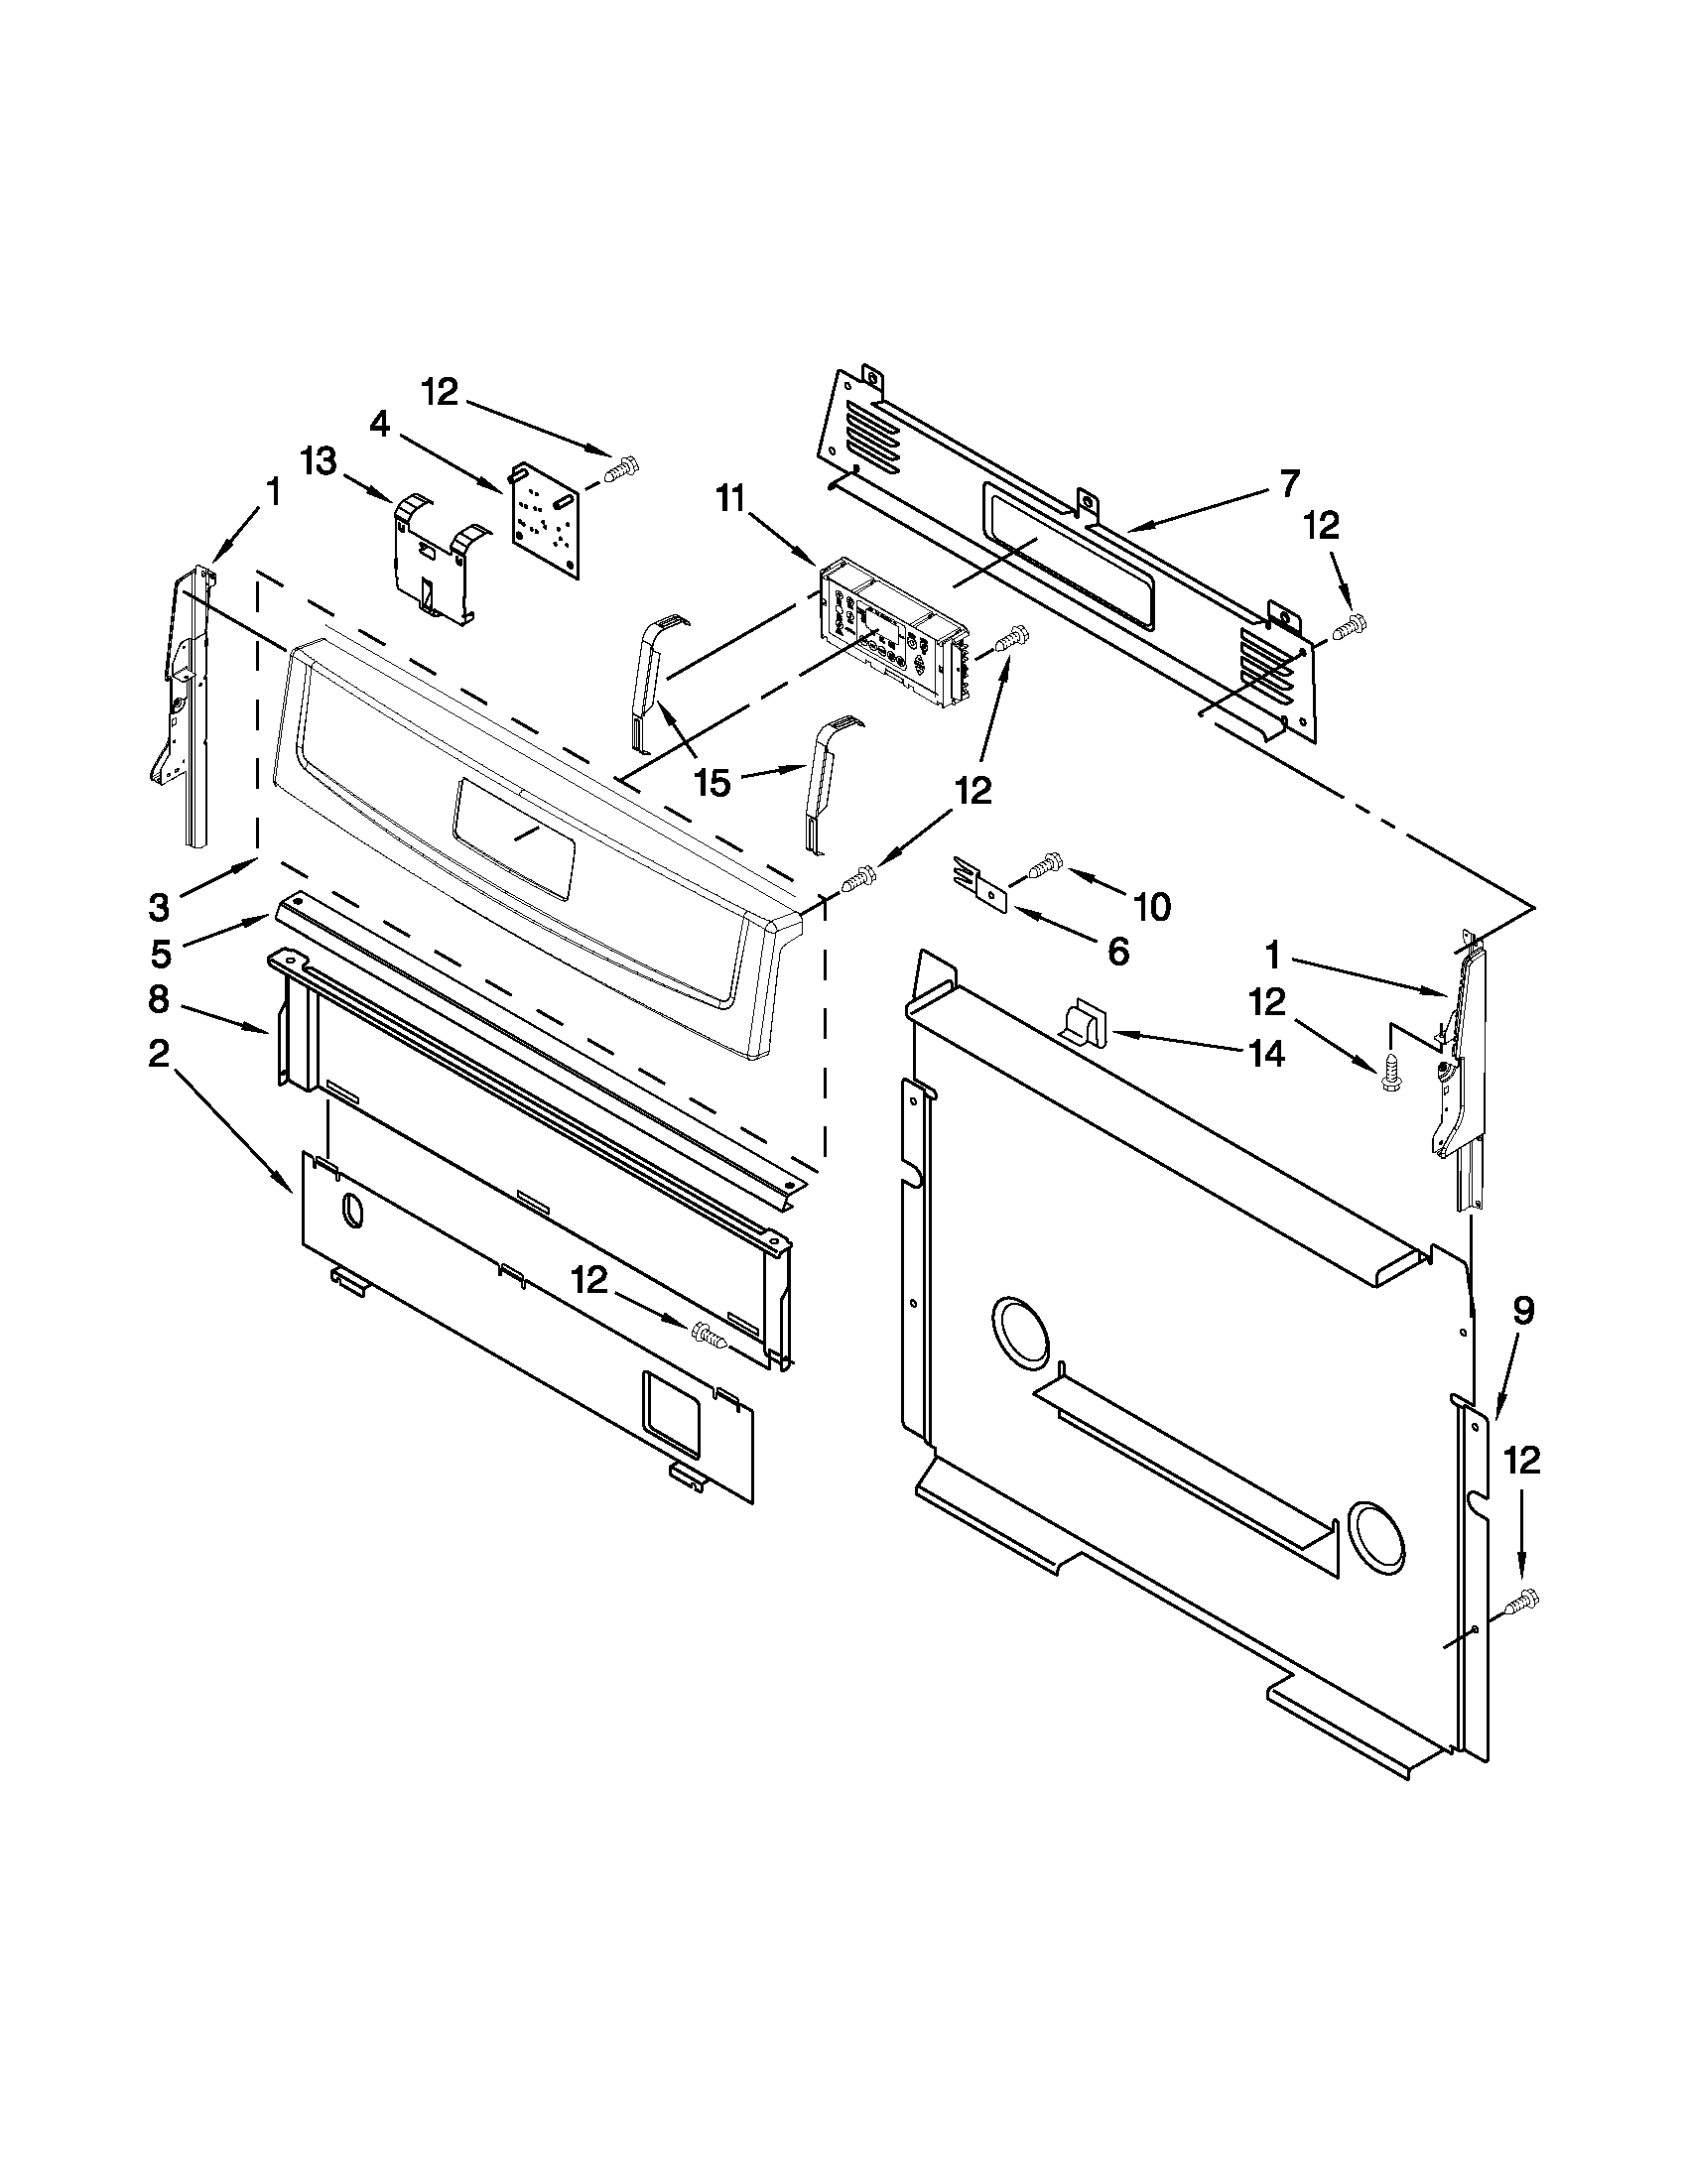 hight resolution of amana agr5844vdw5 control panel parts diagram